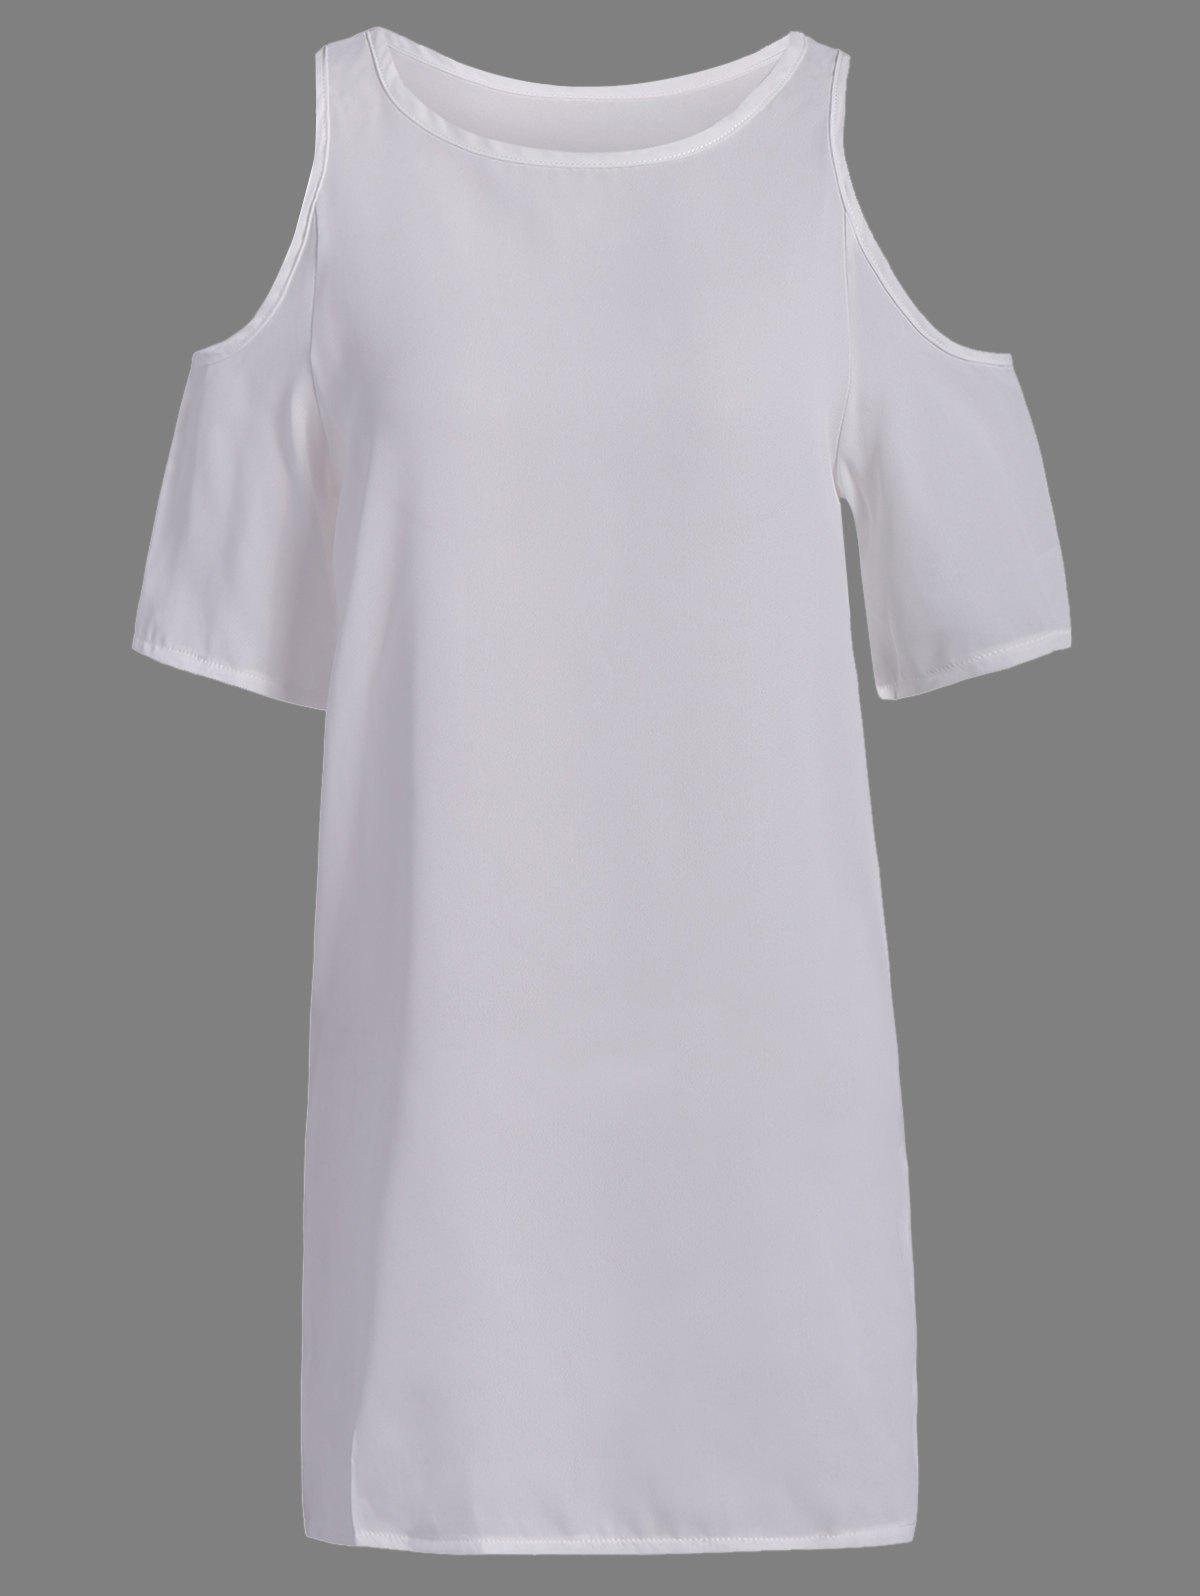 Brief Style Round Neck Short Sleeve Hollow Out Chiffon Womens White DressWomen<br><br><br>Size: 3XL<br>Color: WHITE